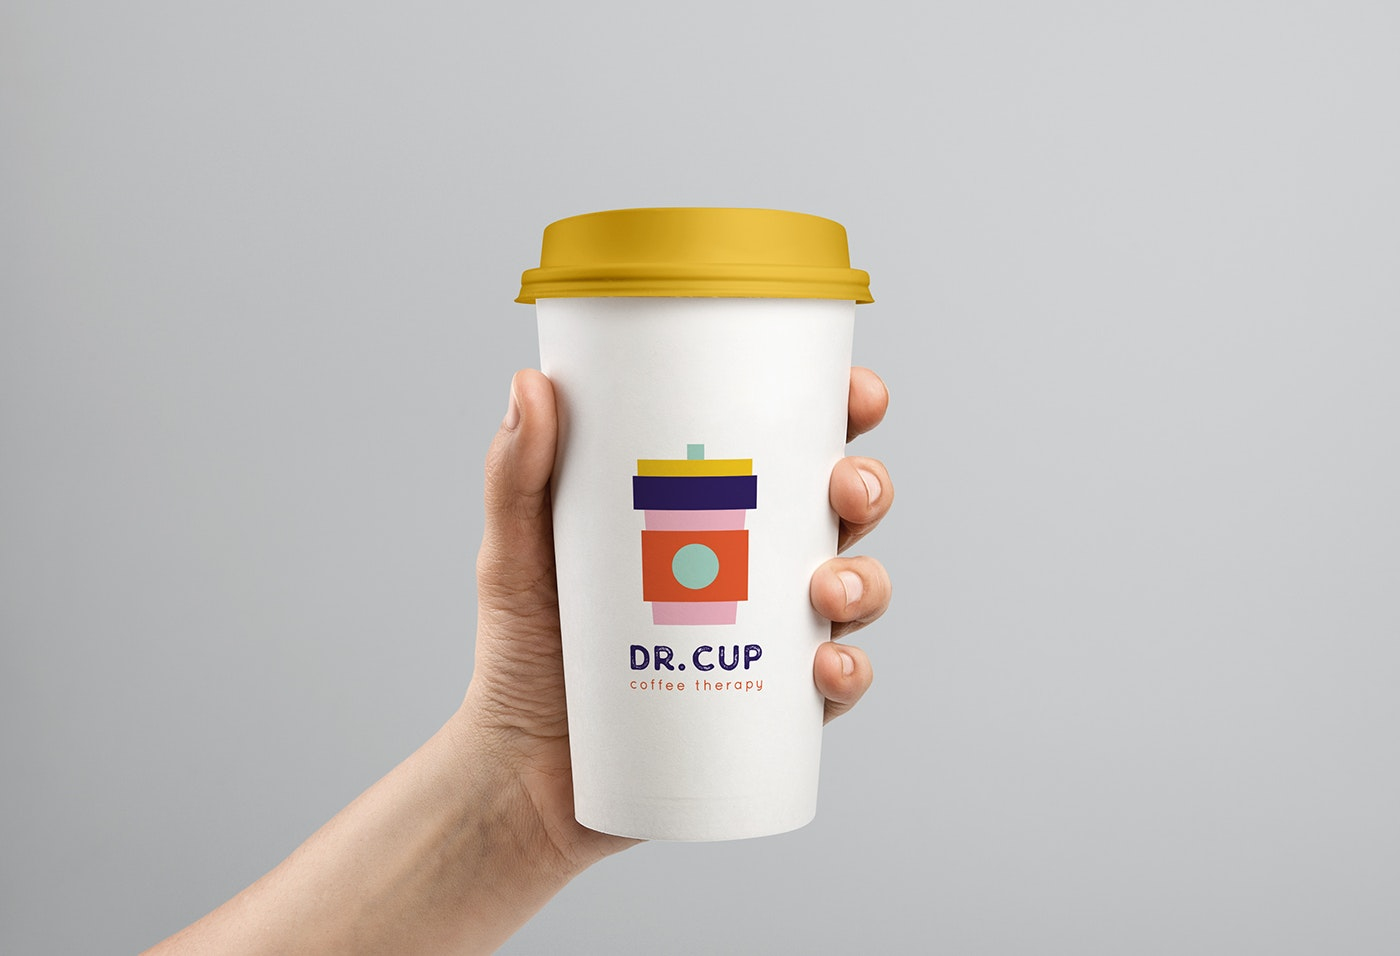 Dr. Cup logo